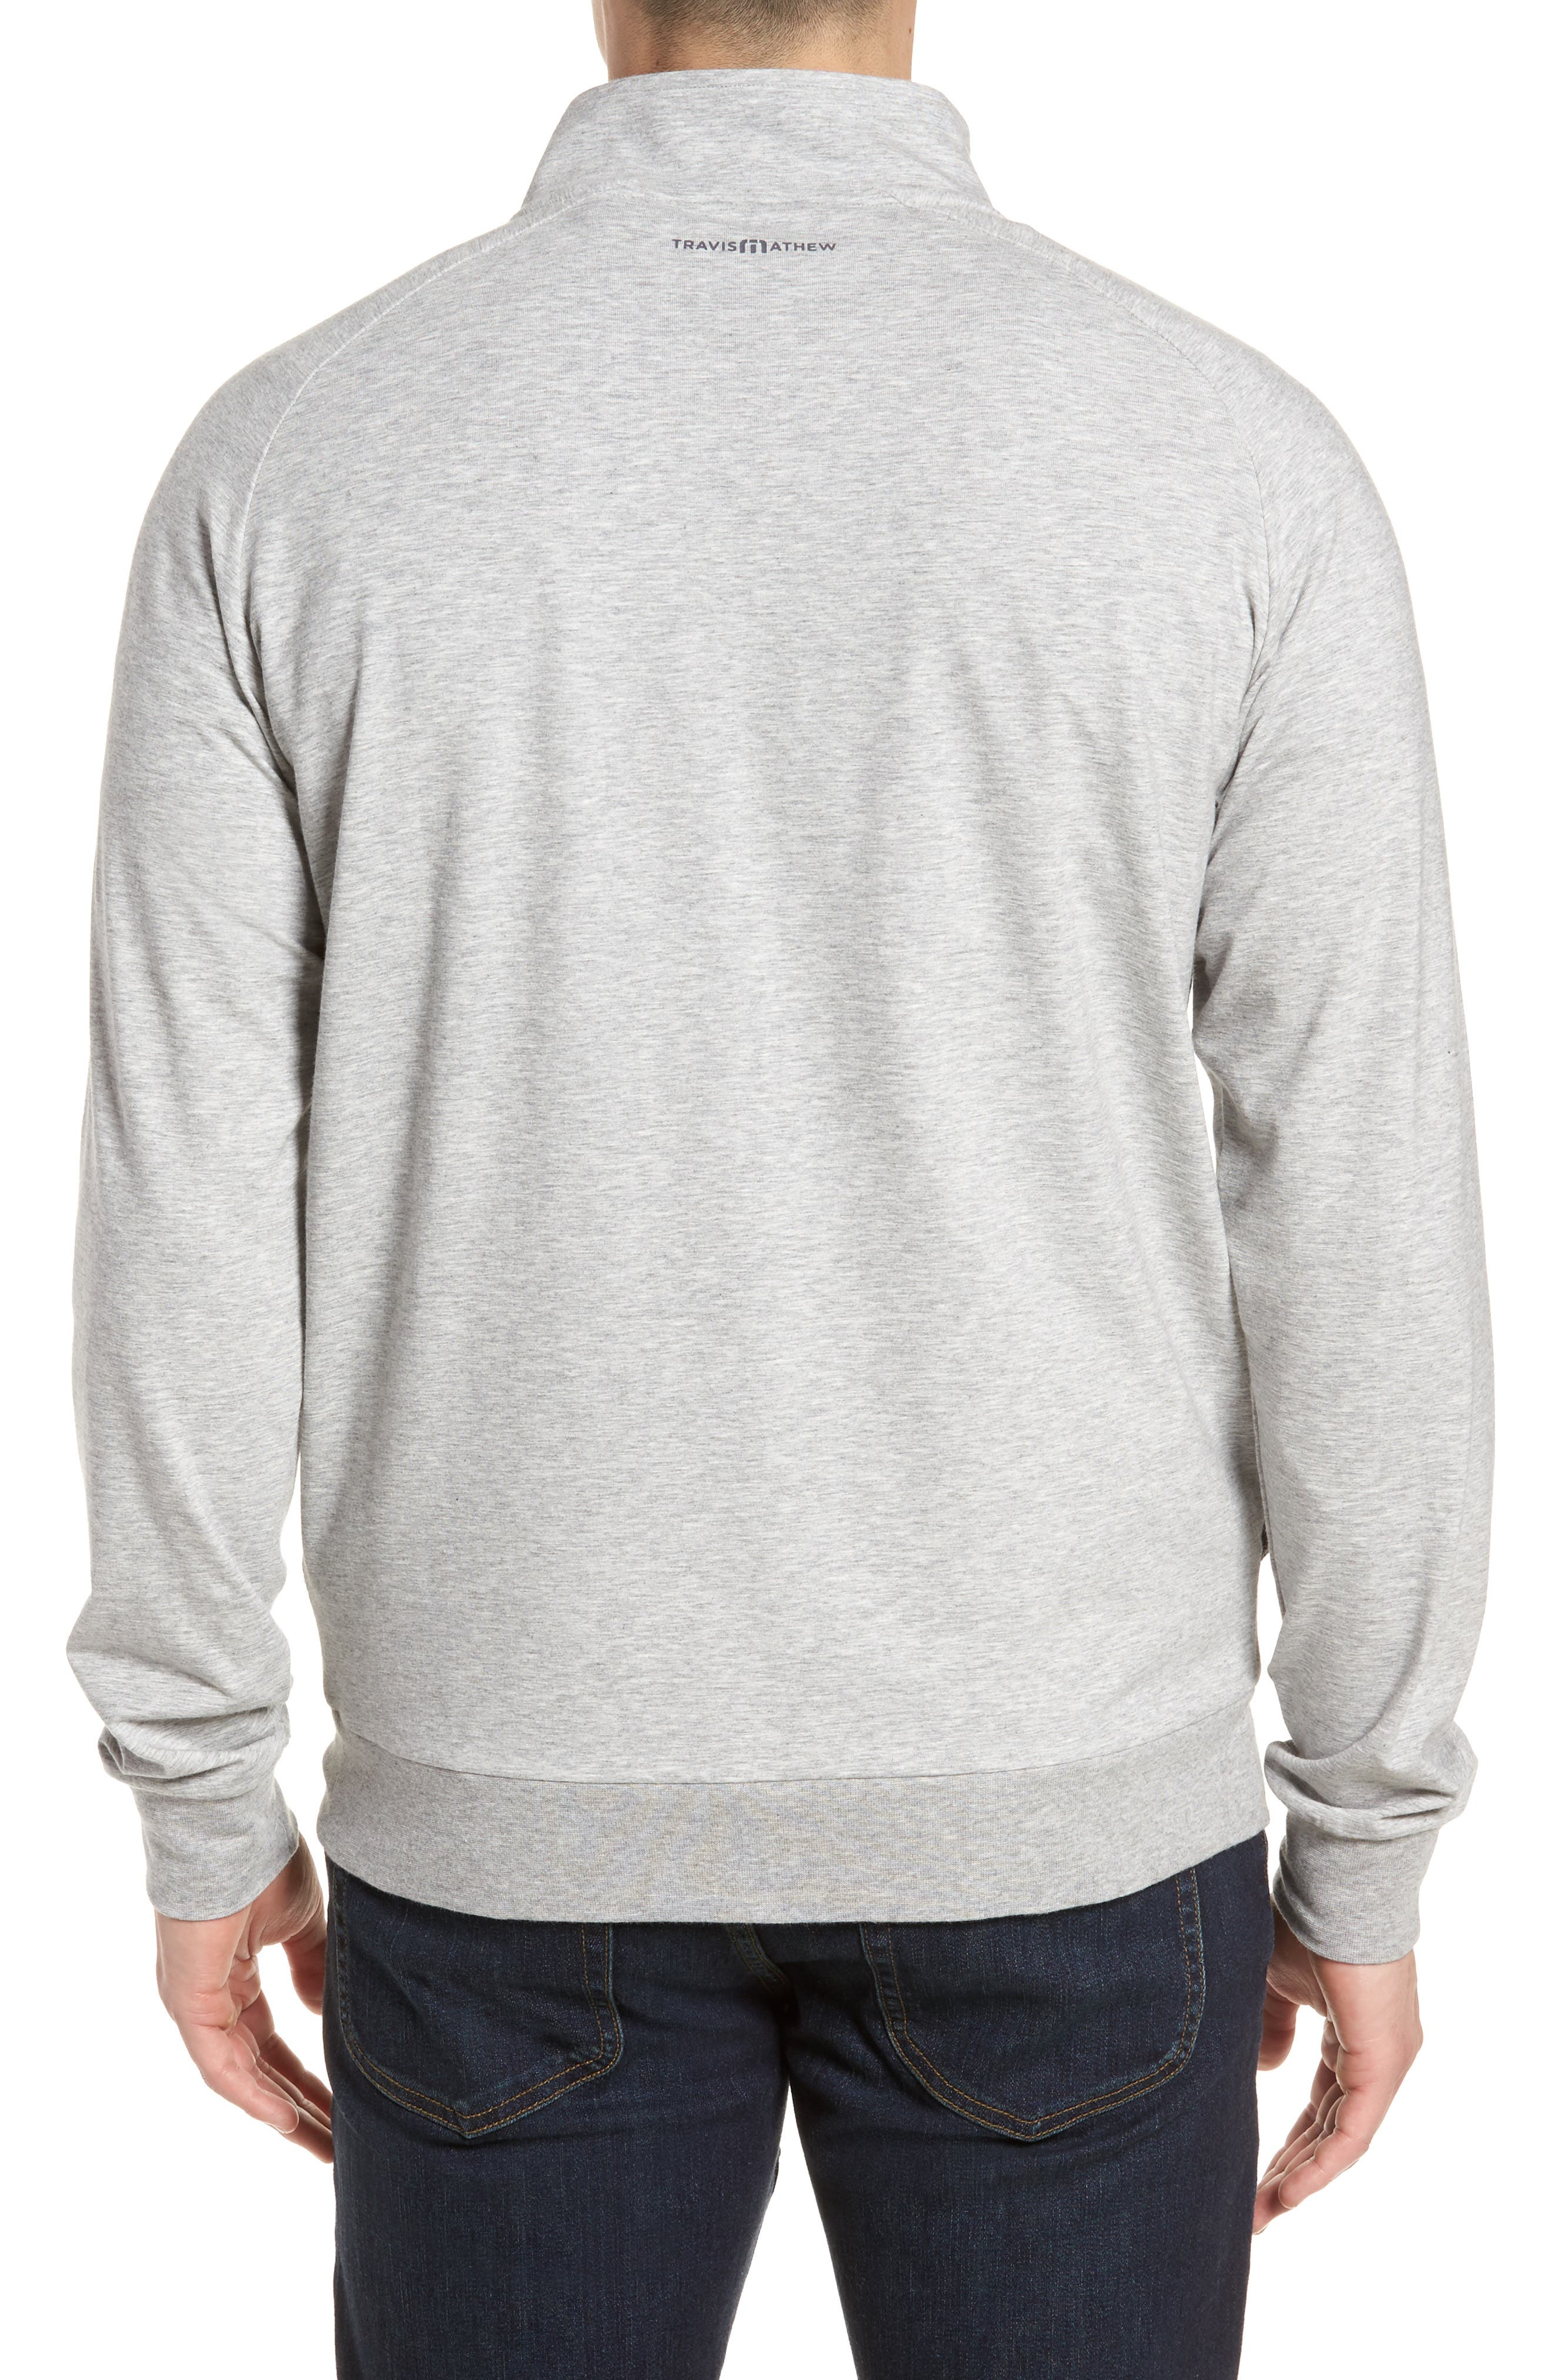 'Strange Love' Trim Fit Wrinkle Resistant Quarter Zip Jacket,                             Alternate thumbnail 2, color,                             Heather Alloy